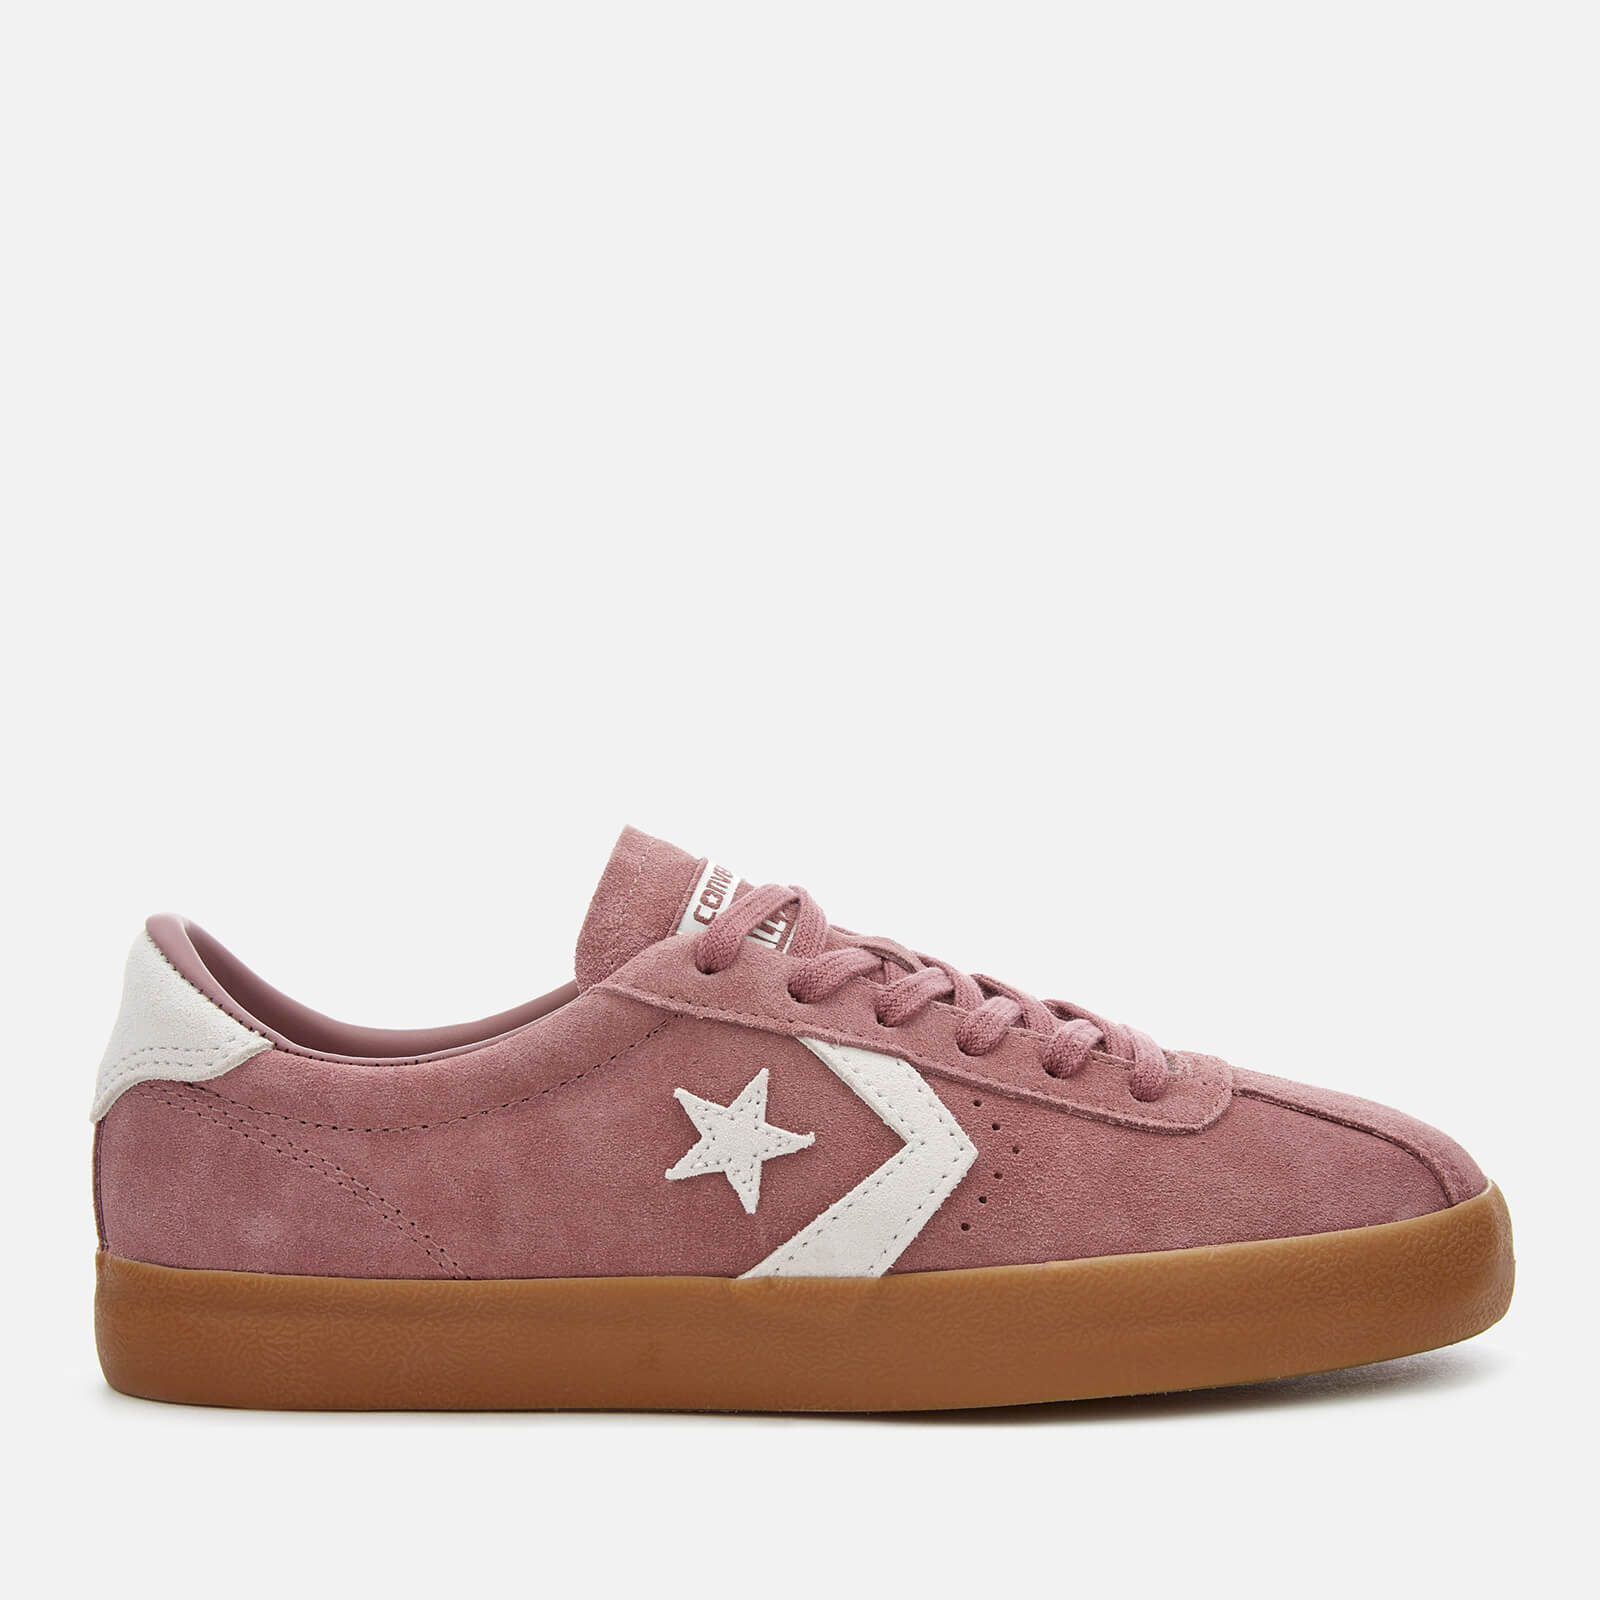 78ff2cc1627115 Converse Women s Breakpoint Ox Trainers - Saddle Hale Putty Gum Womens  Footwear